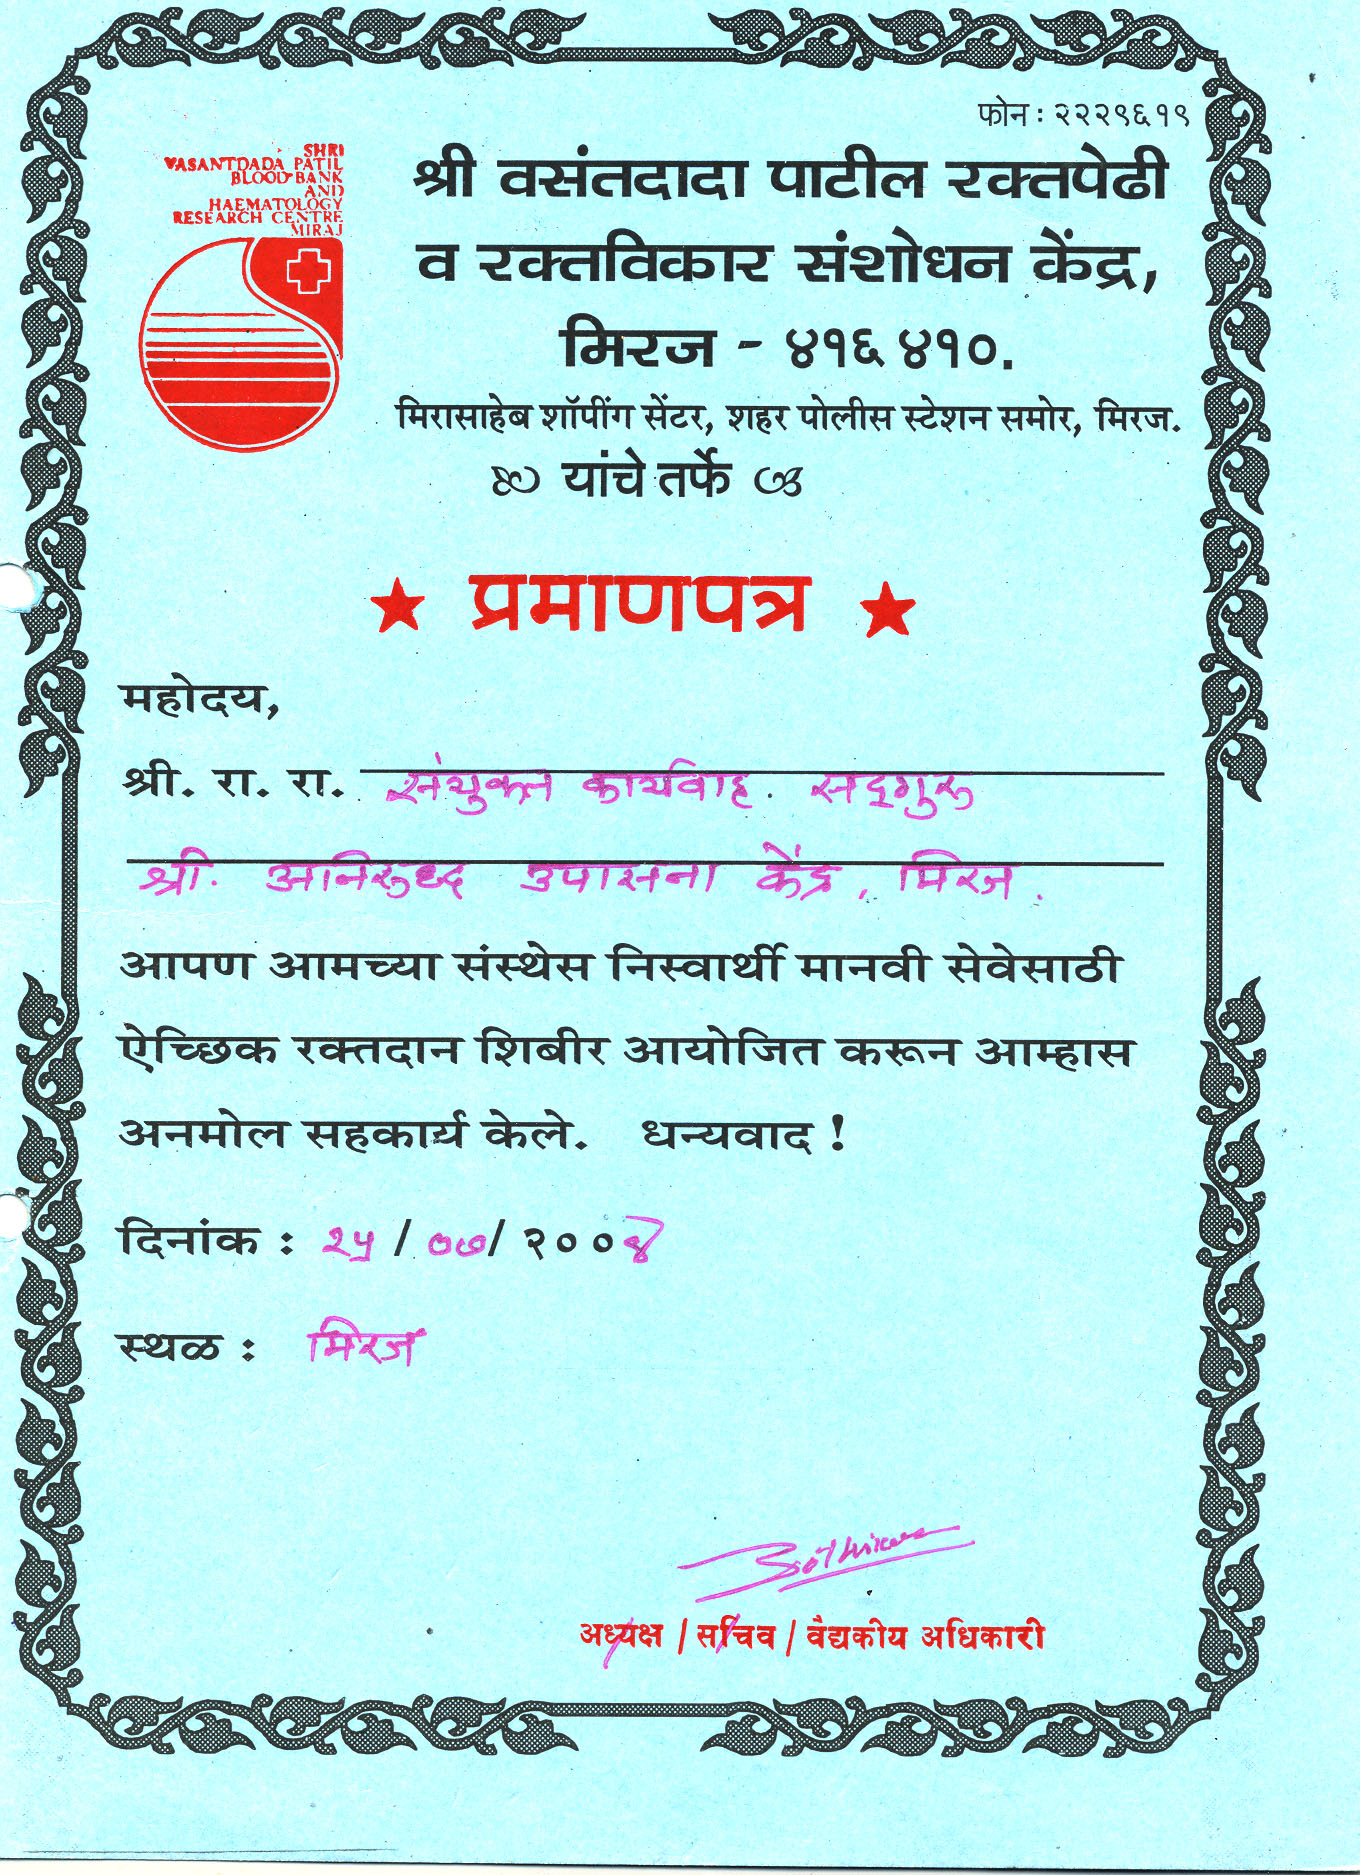 Appreciation letter blood donation camps shree aniruddha upasana appreciation letter from vasantdada patil blood bank 2004 for aniruddhafoundation compassion yelopaper Image collections